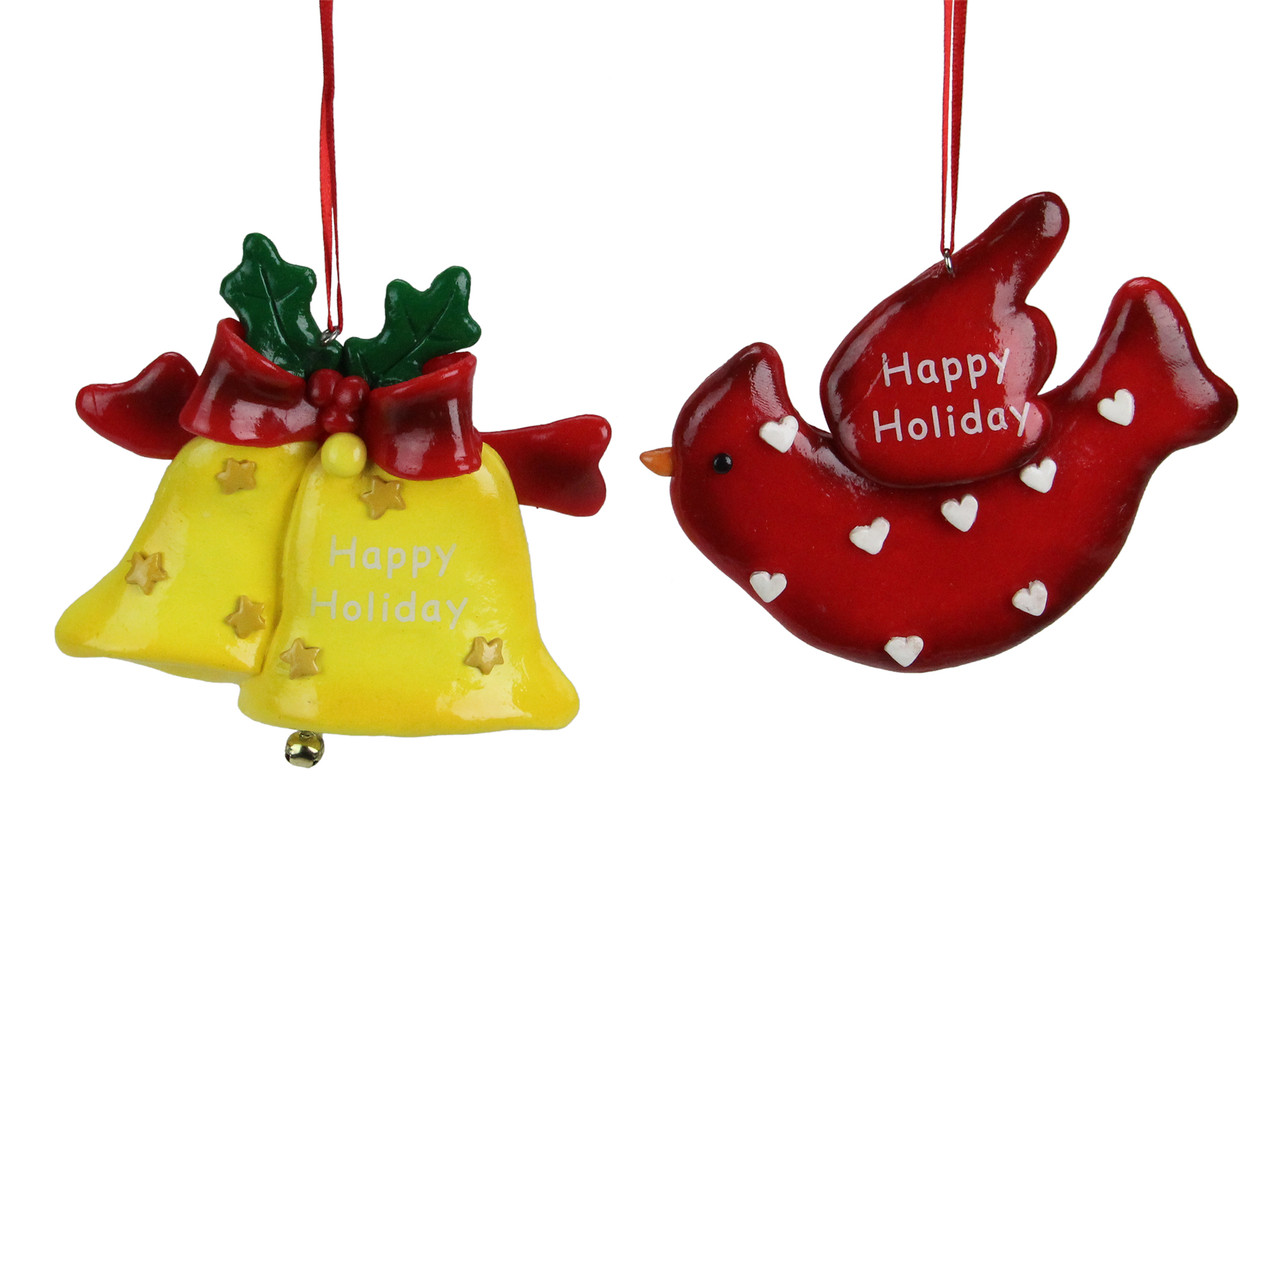 Roman Christmas Ornaments.Club Pack Of 24 Happy Holiday Bell And Cardinal Christmas Ornaments 4 25 6362283